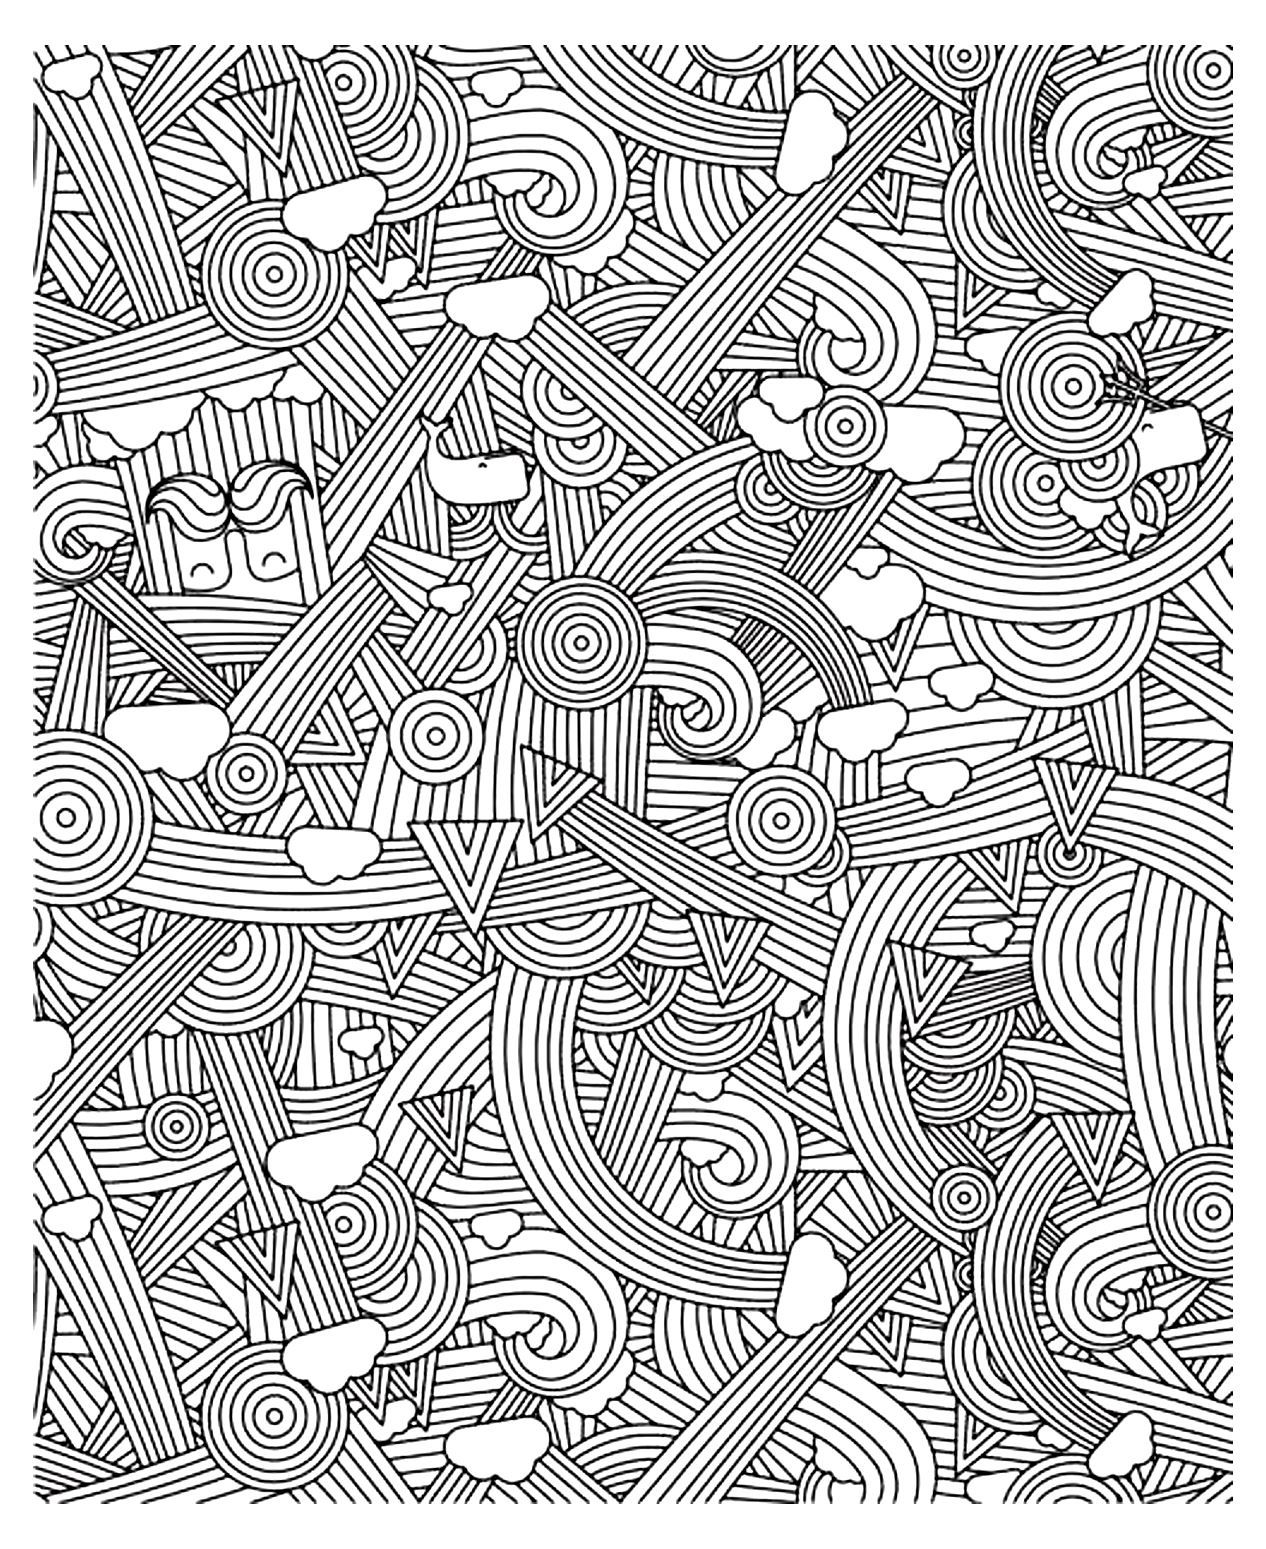 Free coloring page coloring adult zen anti stress to for Free printable zen coloring pages